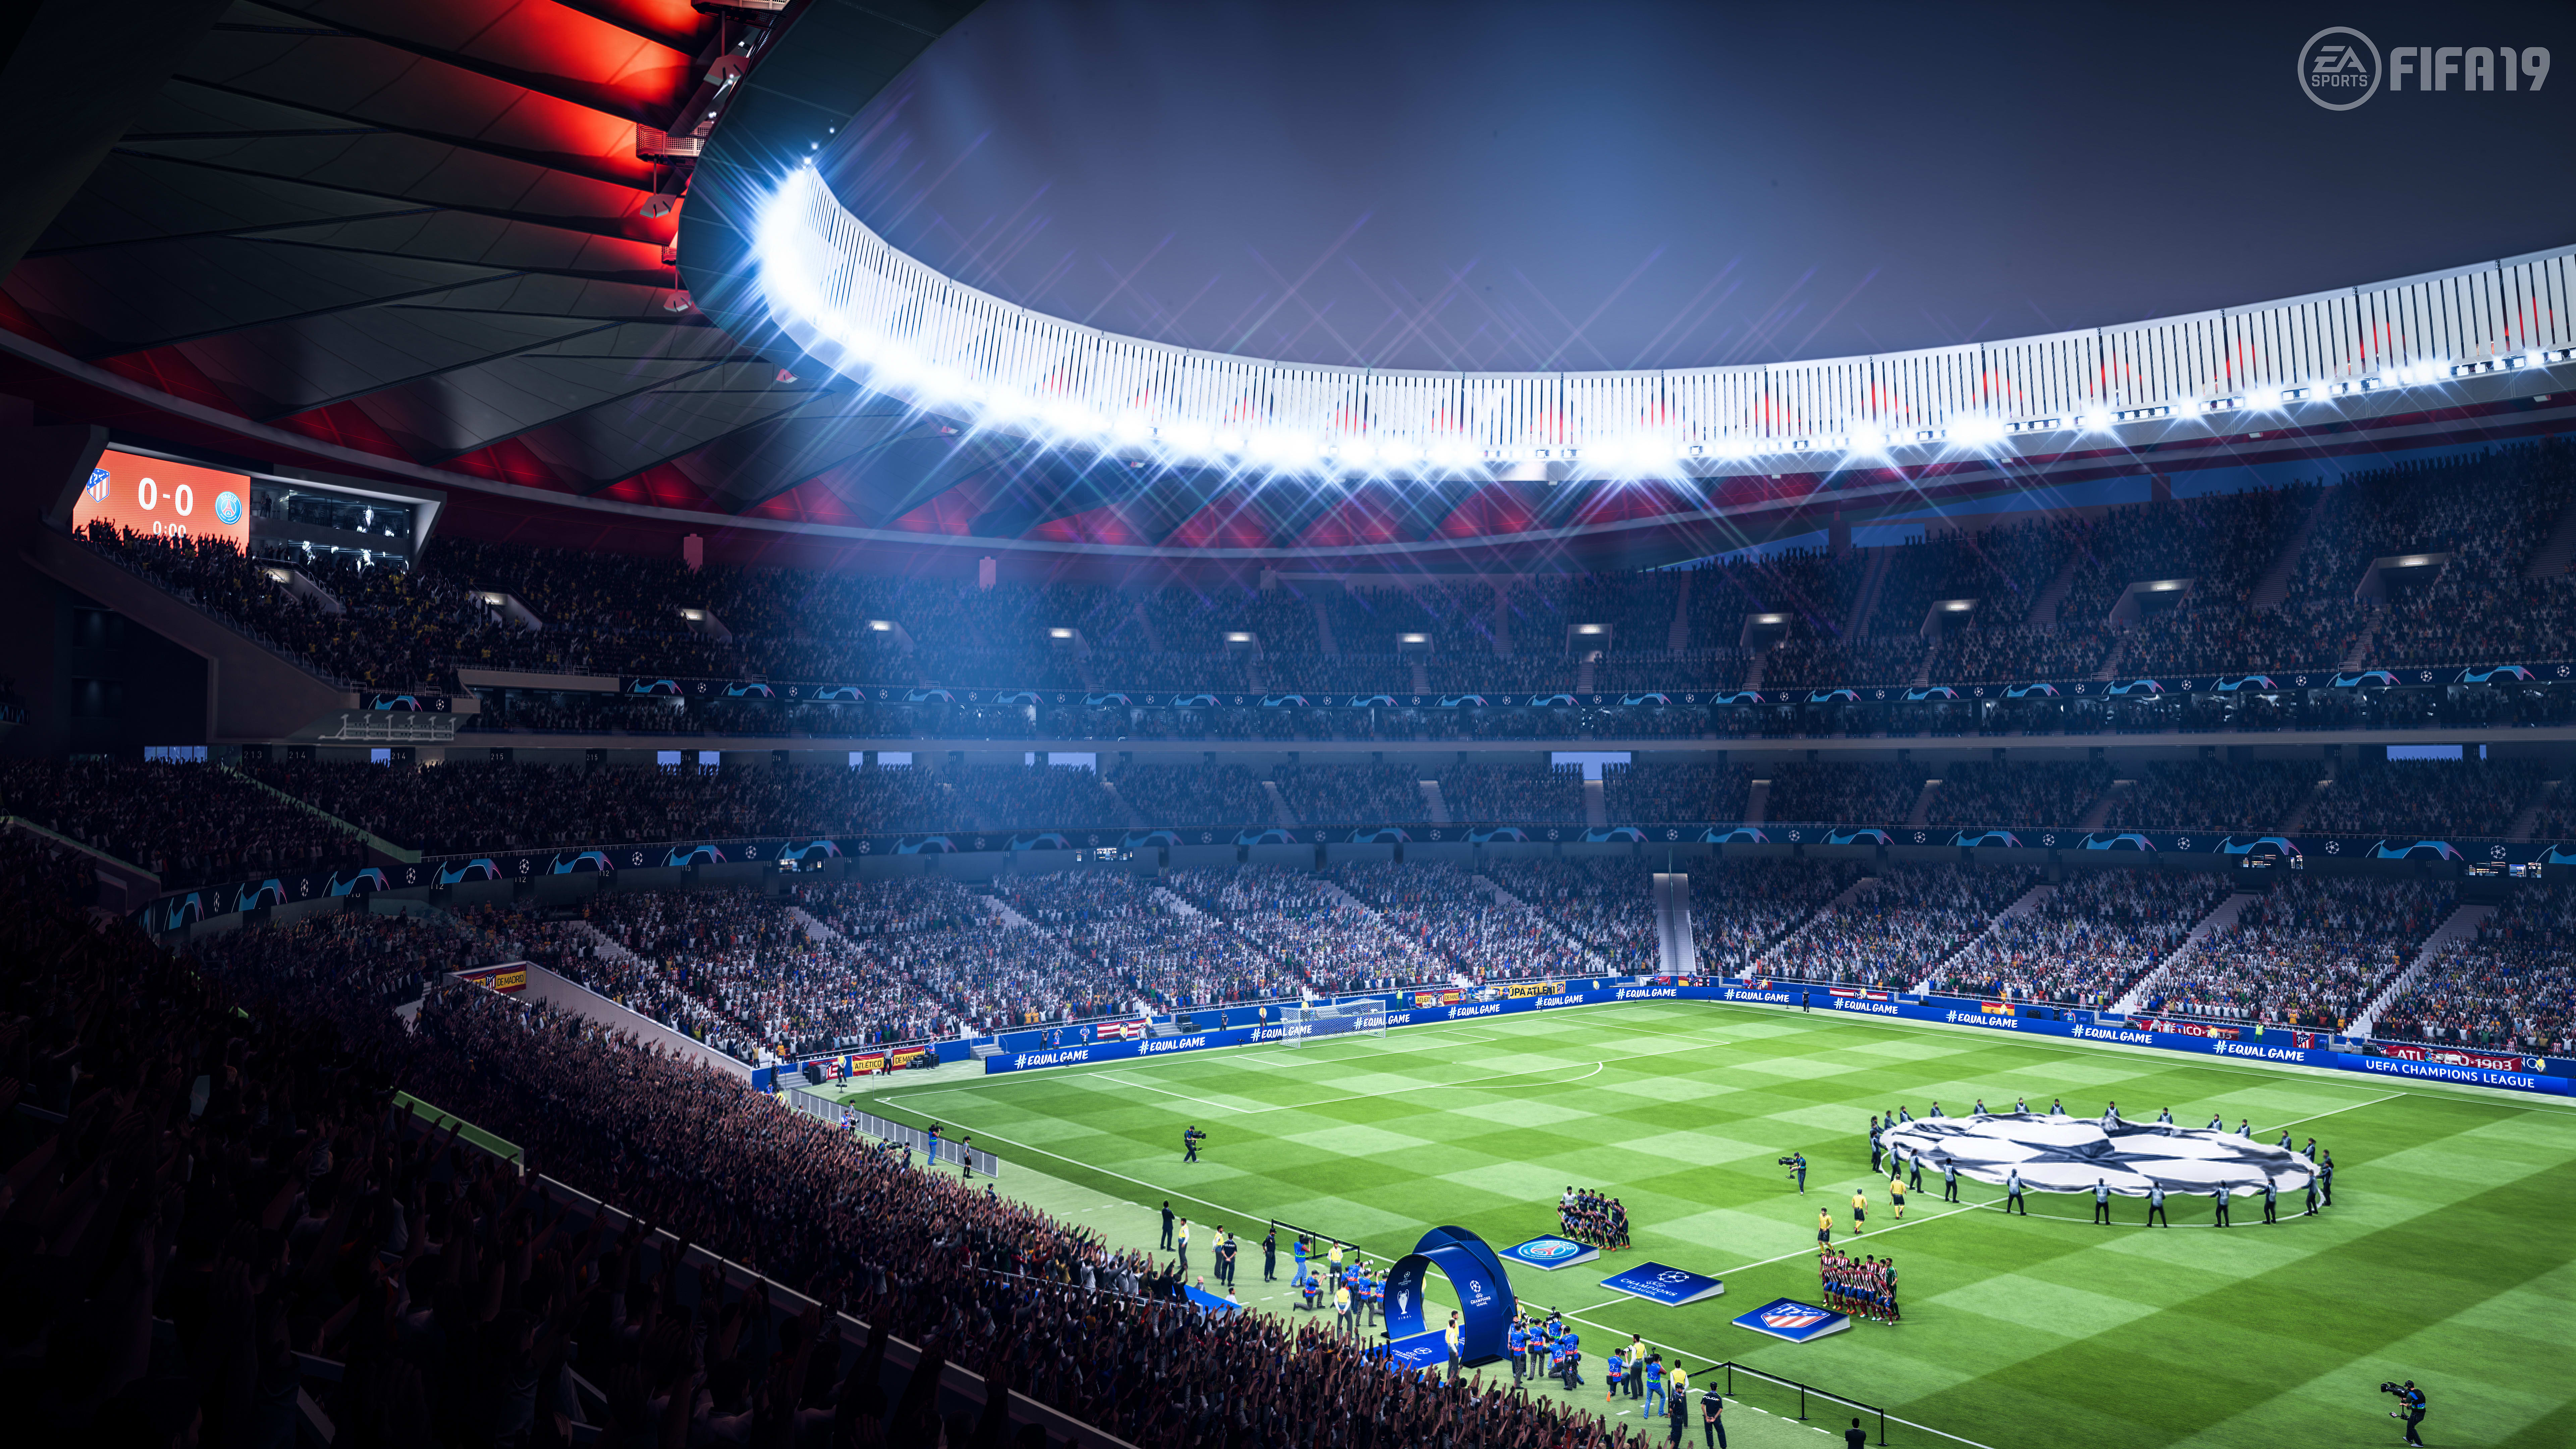 fifa 19 available on ps4 game